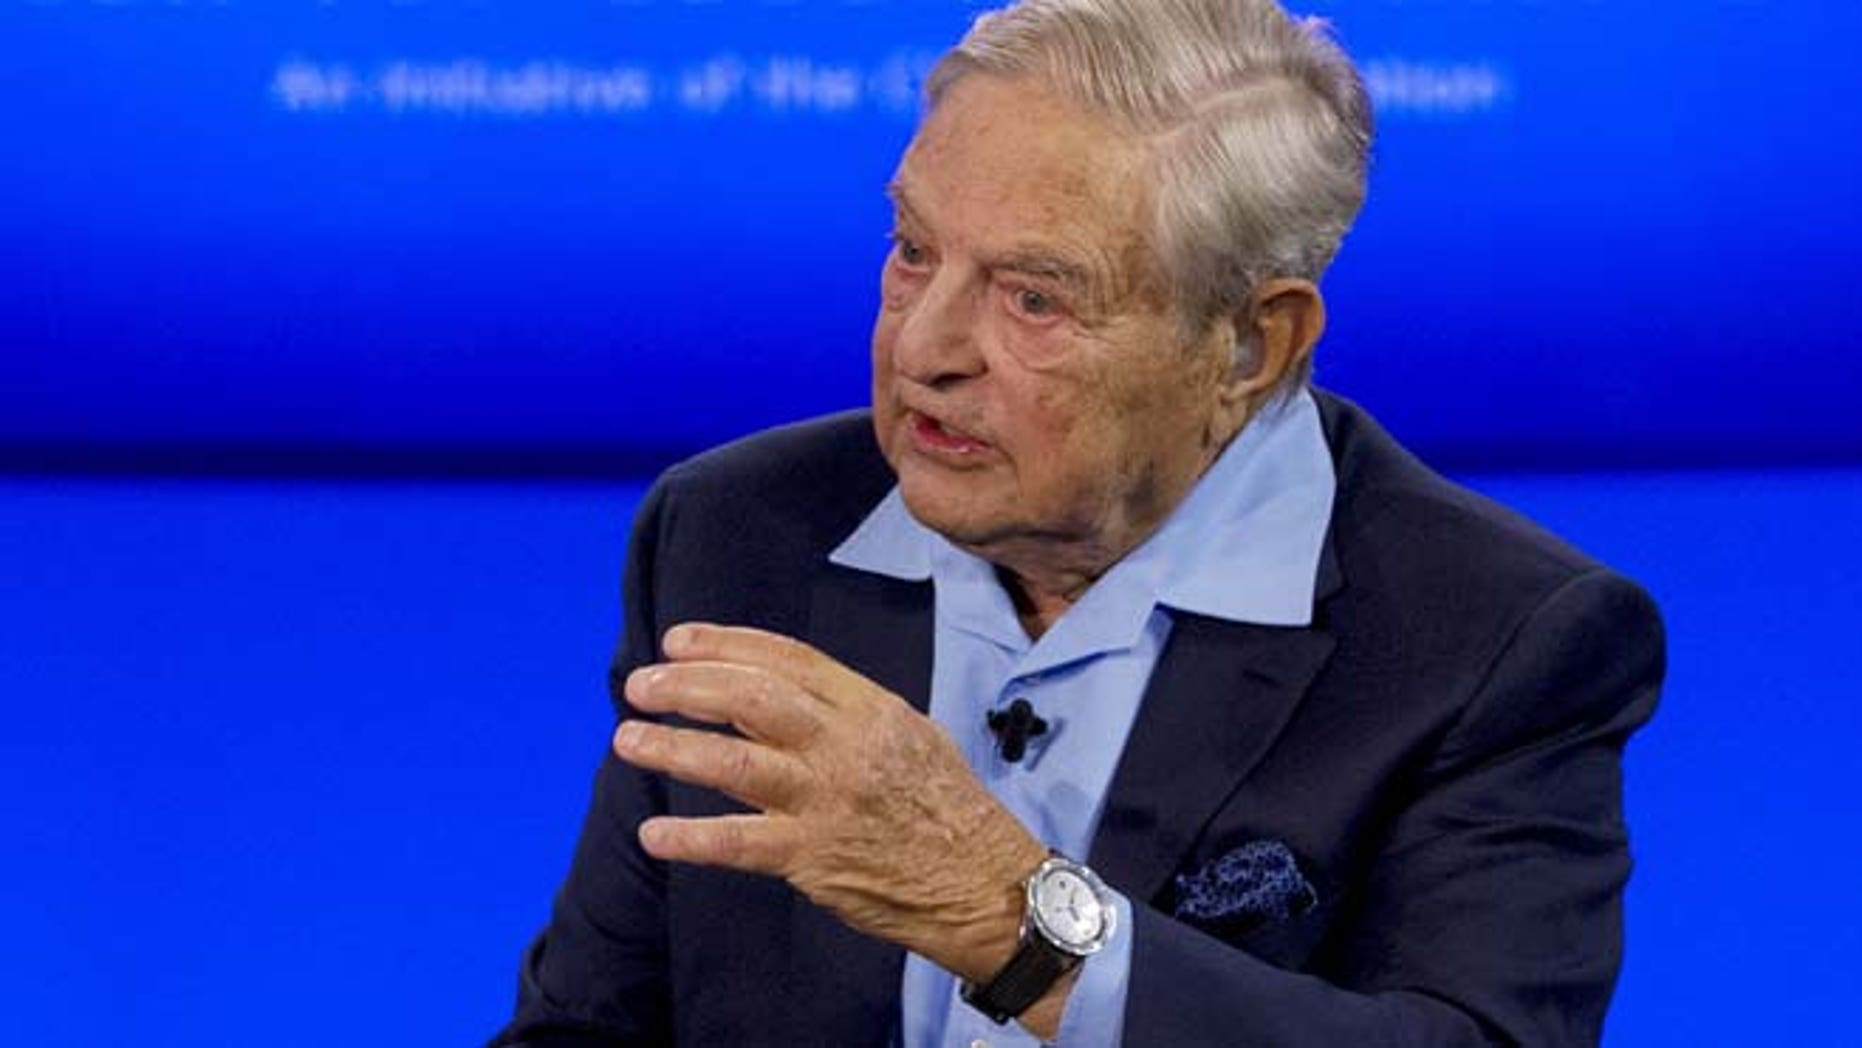 Sept. 27: Billionaire hedge fund manager George Soros speaks during a discussion at the Clinton Global Initiative's annual meeting in New York/